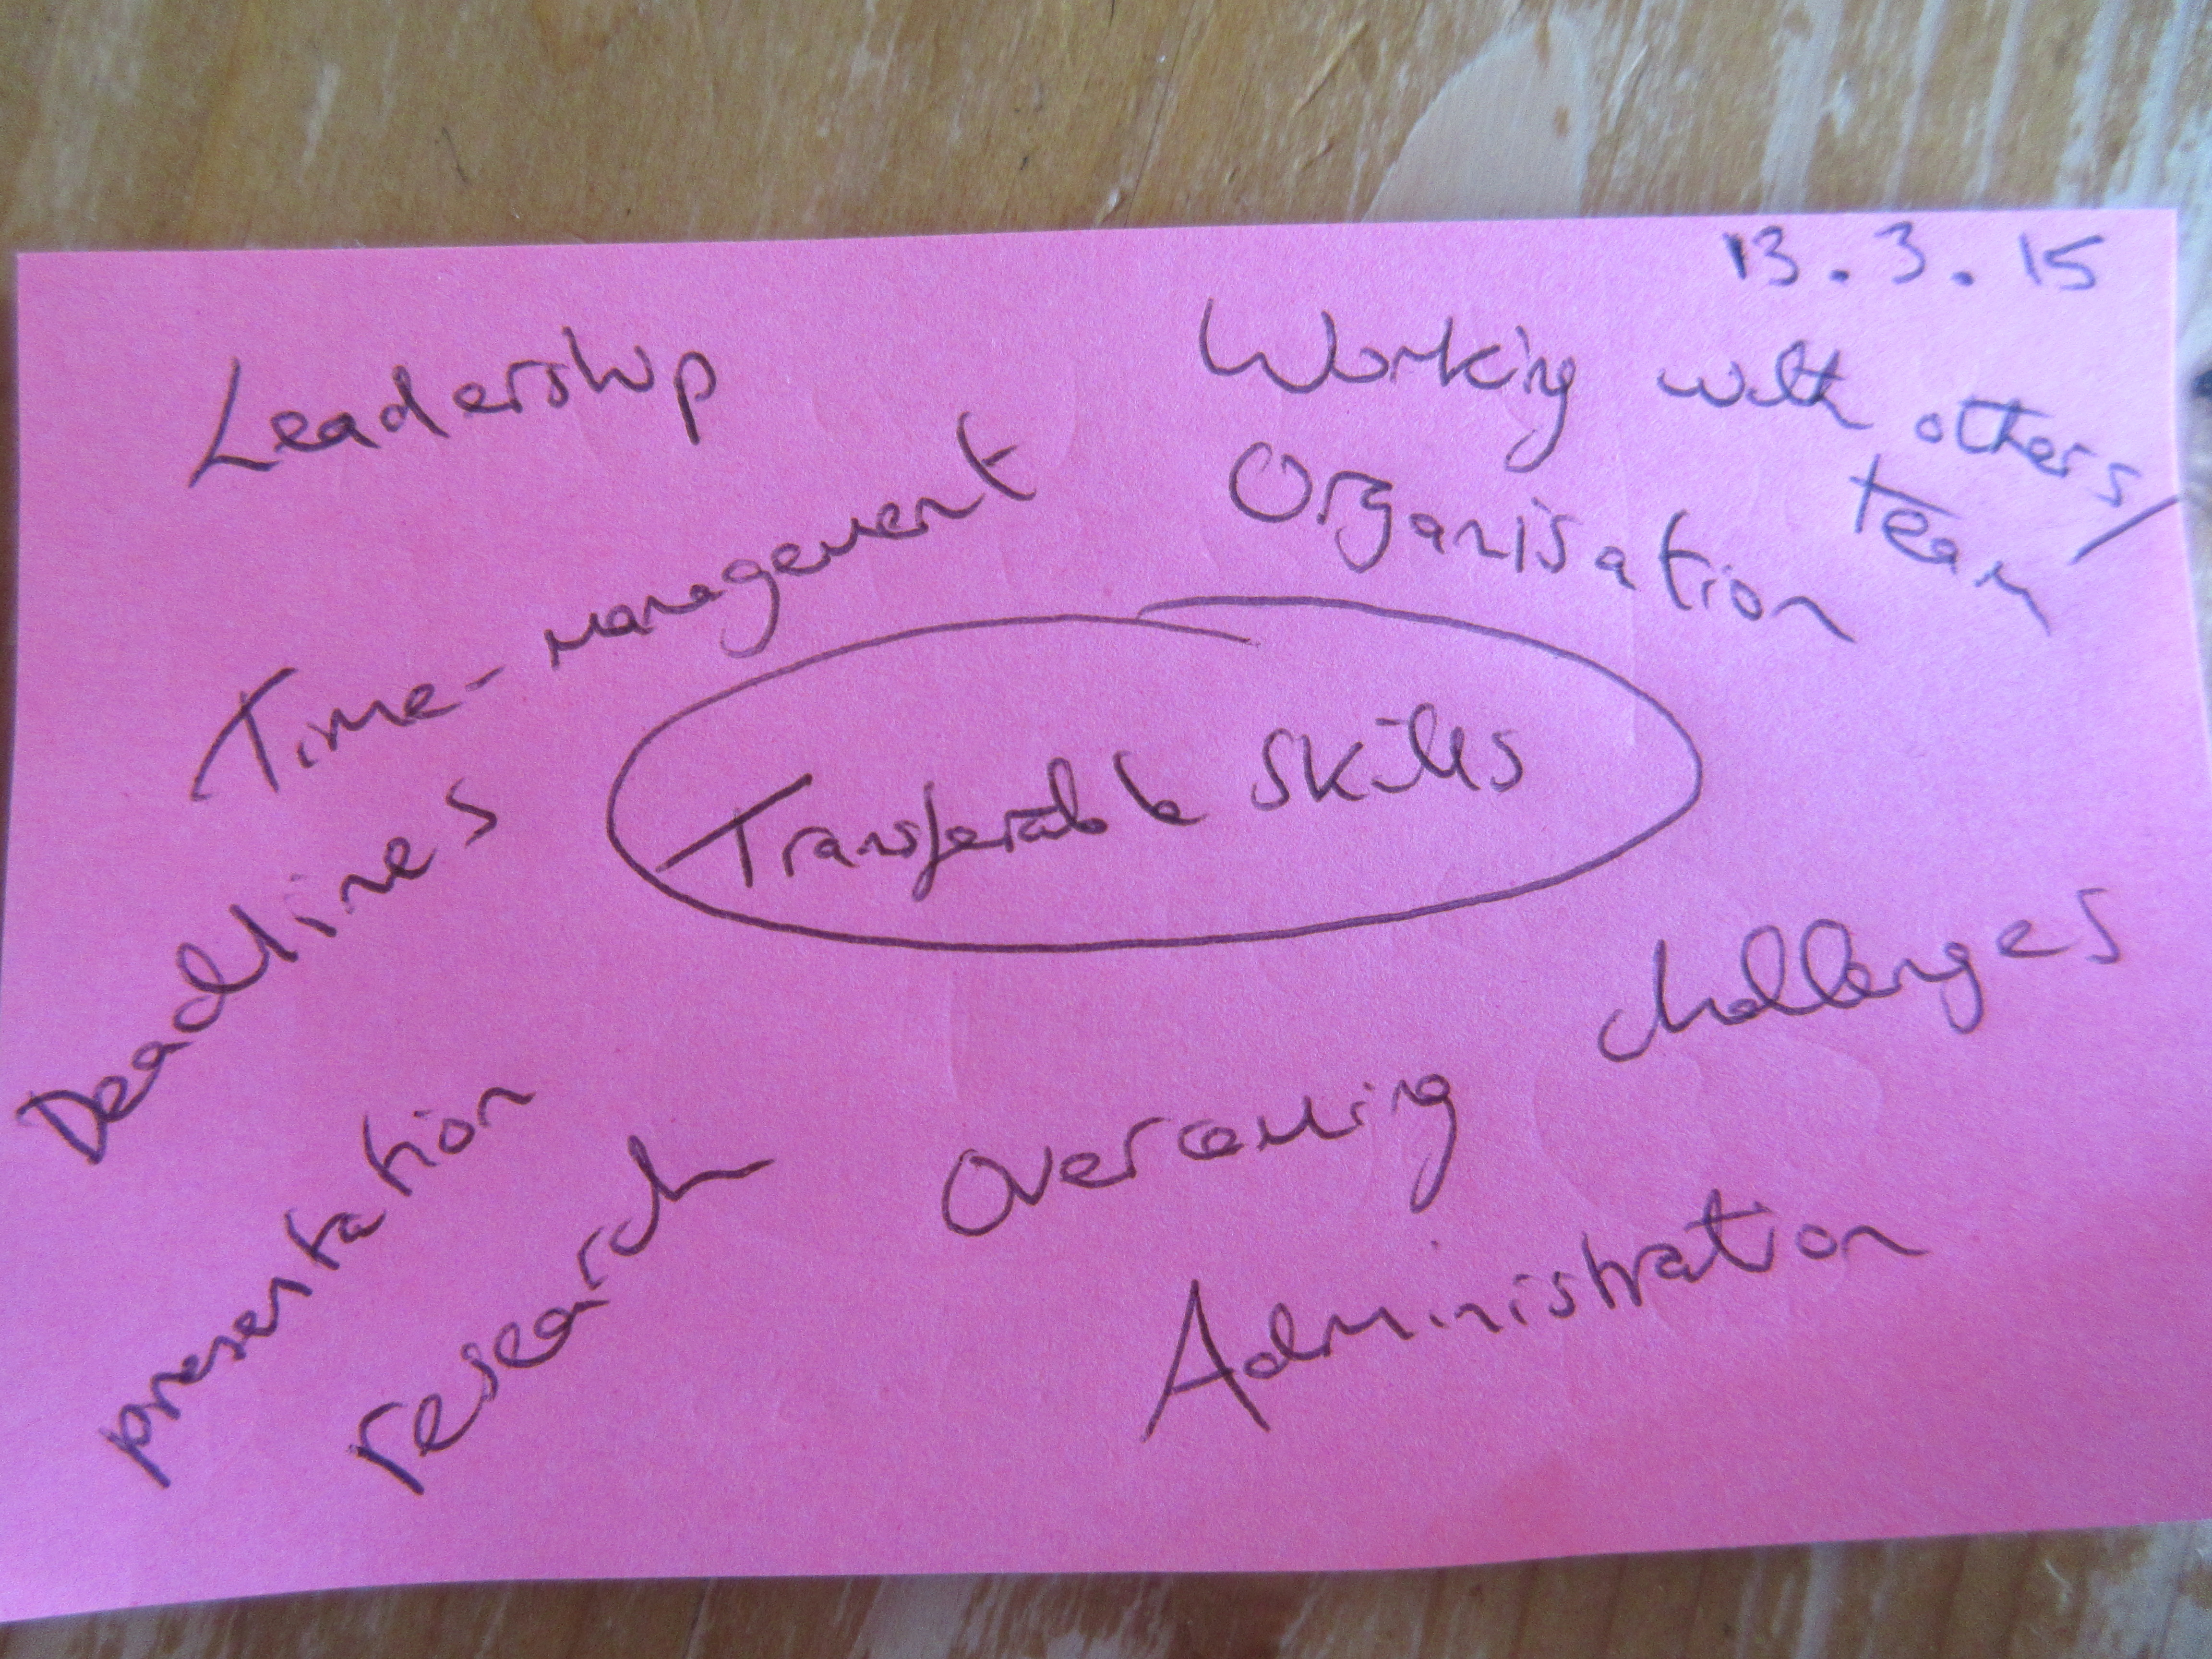 pilot med reflections on my own transferable skills list ew transferable id